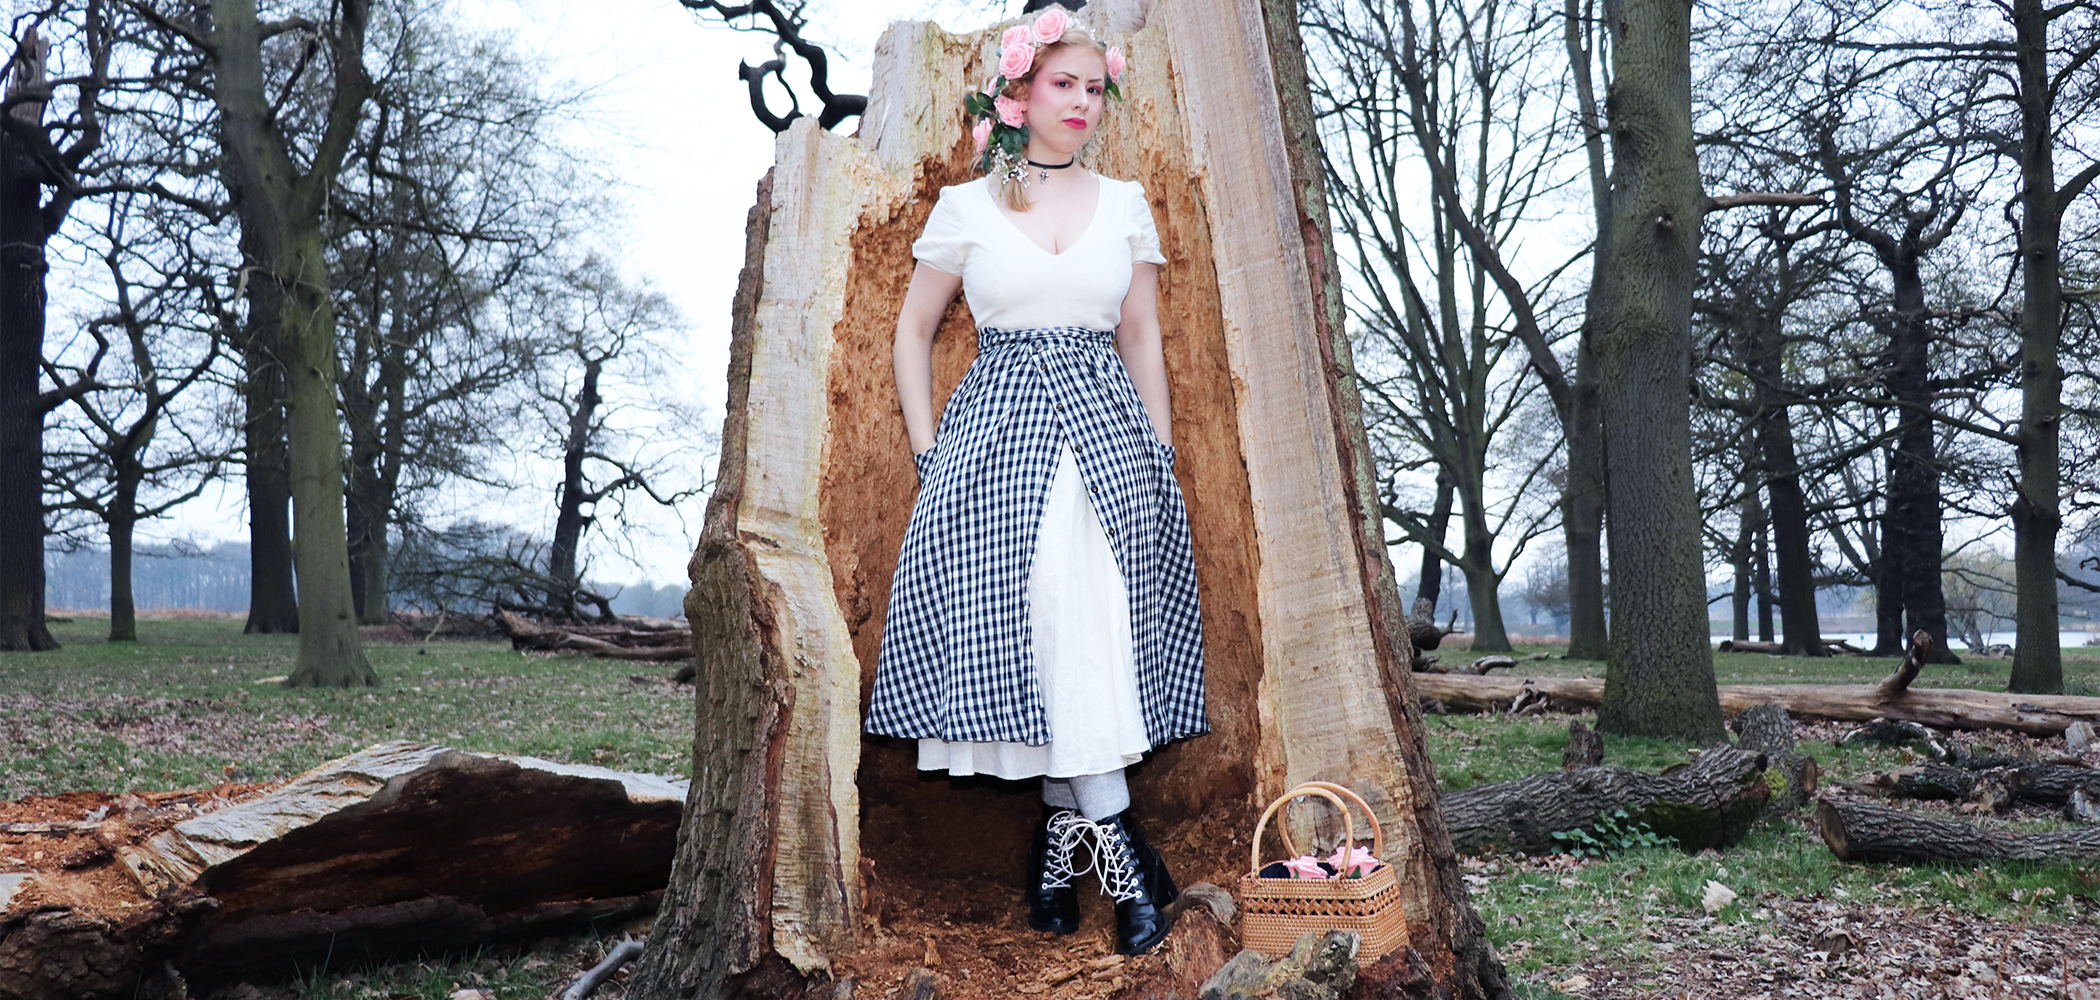 The Shoot: Country Girl - The Fashion Nomad